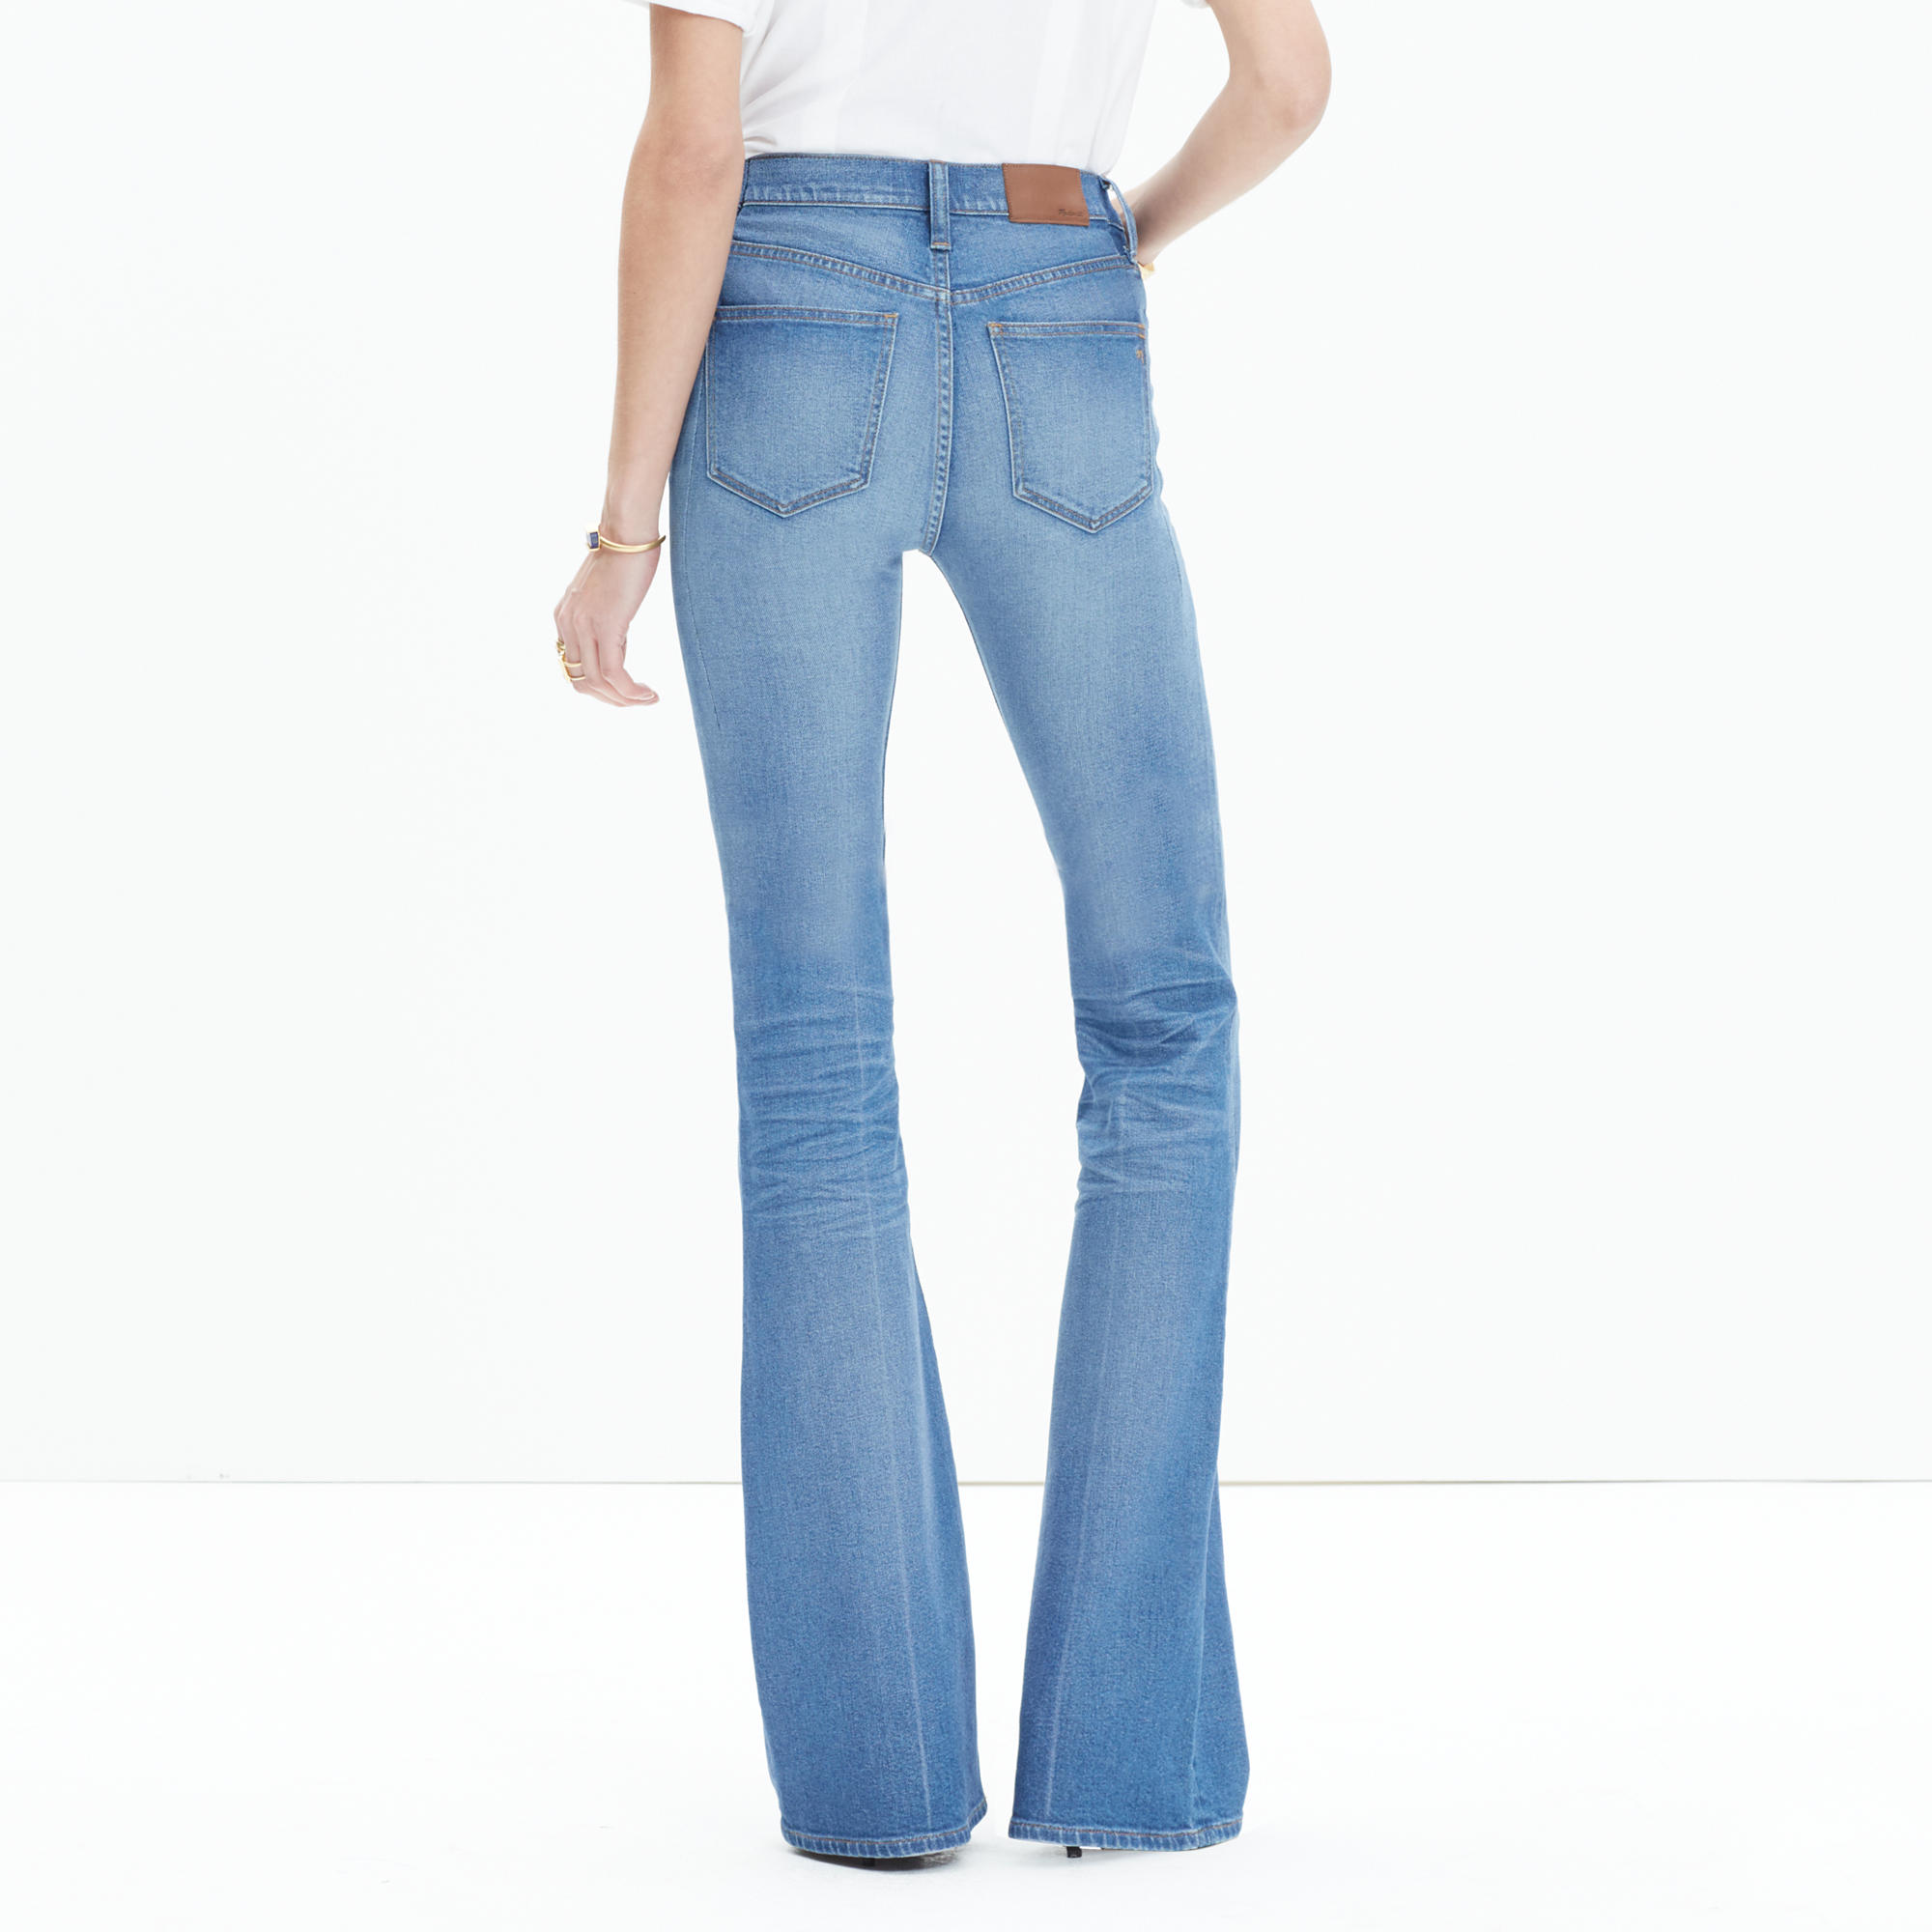 madewell jeans 30% off